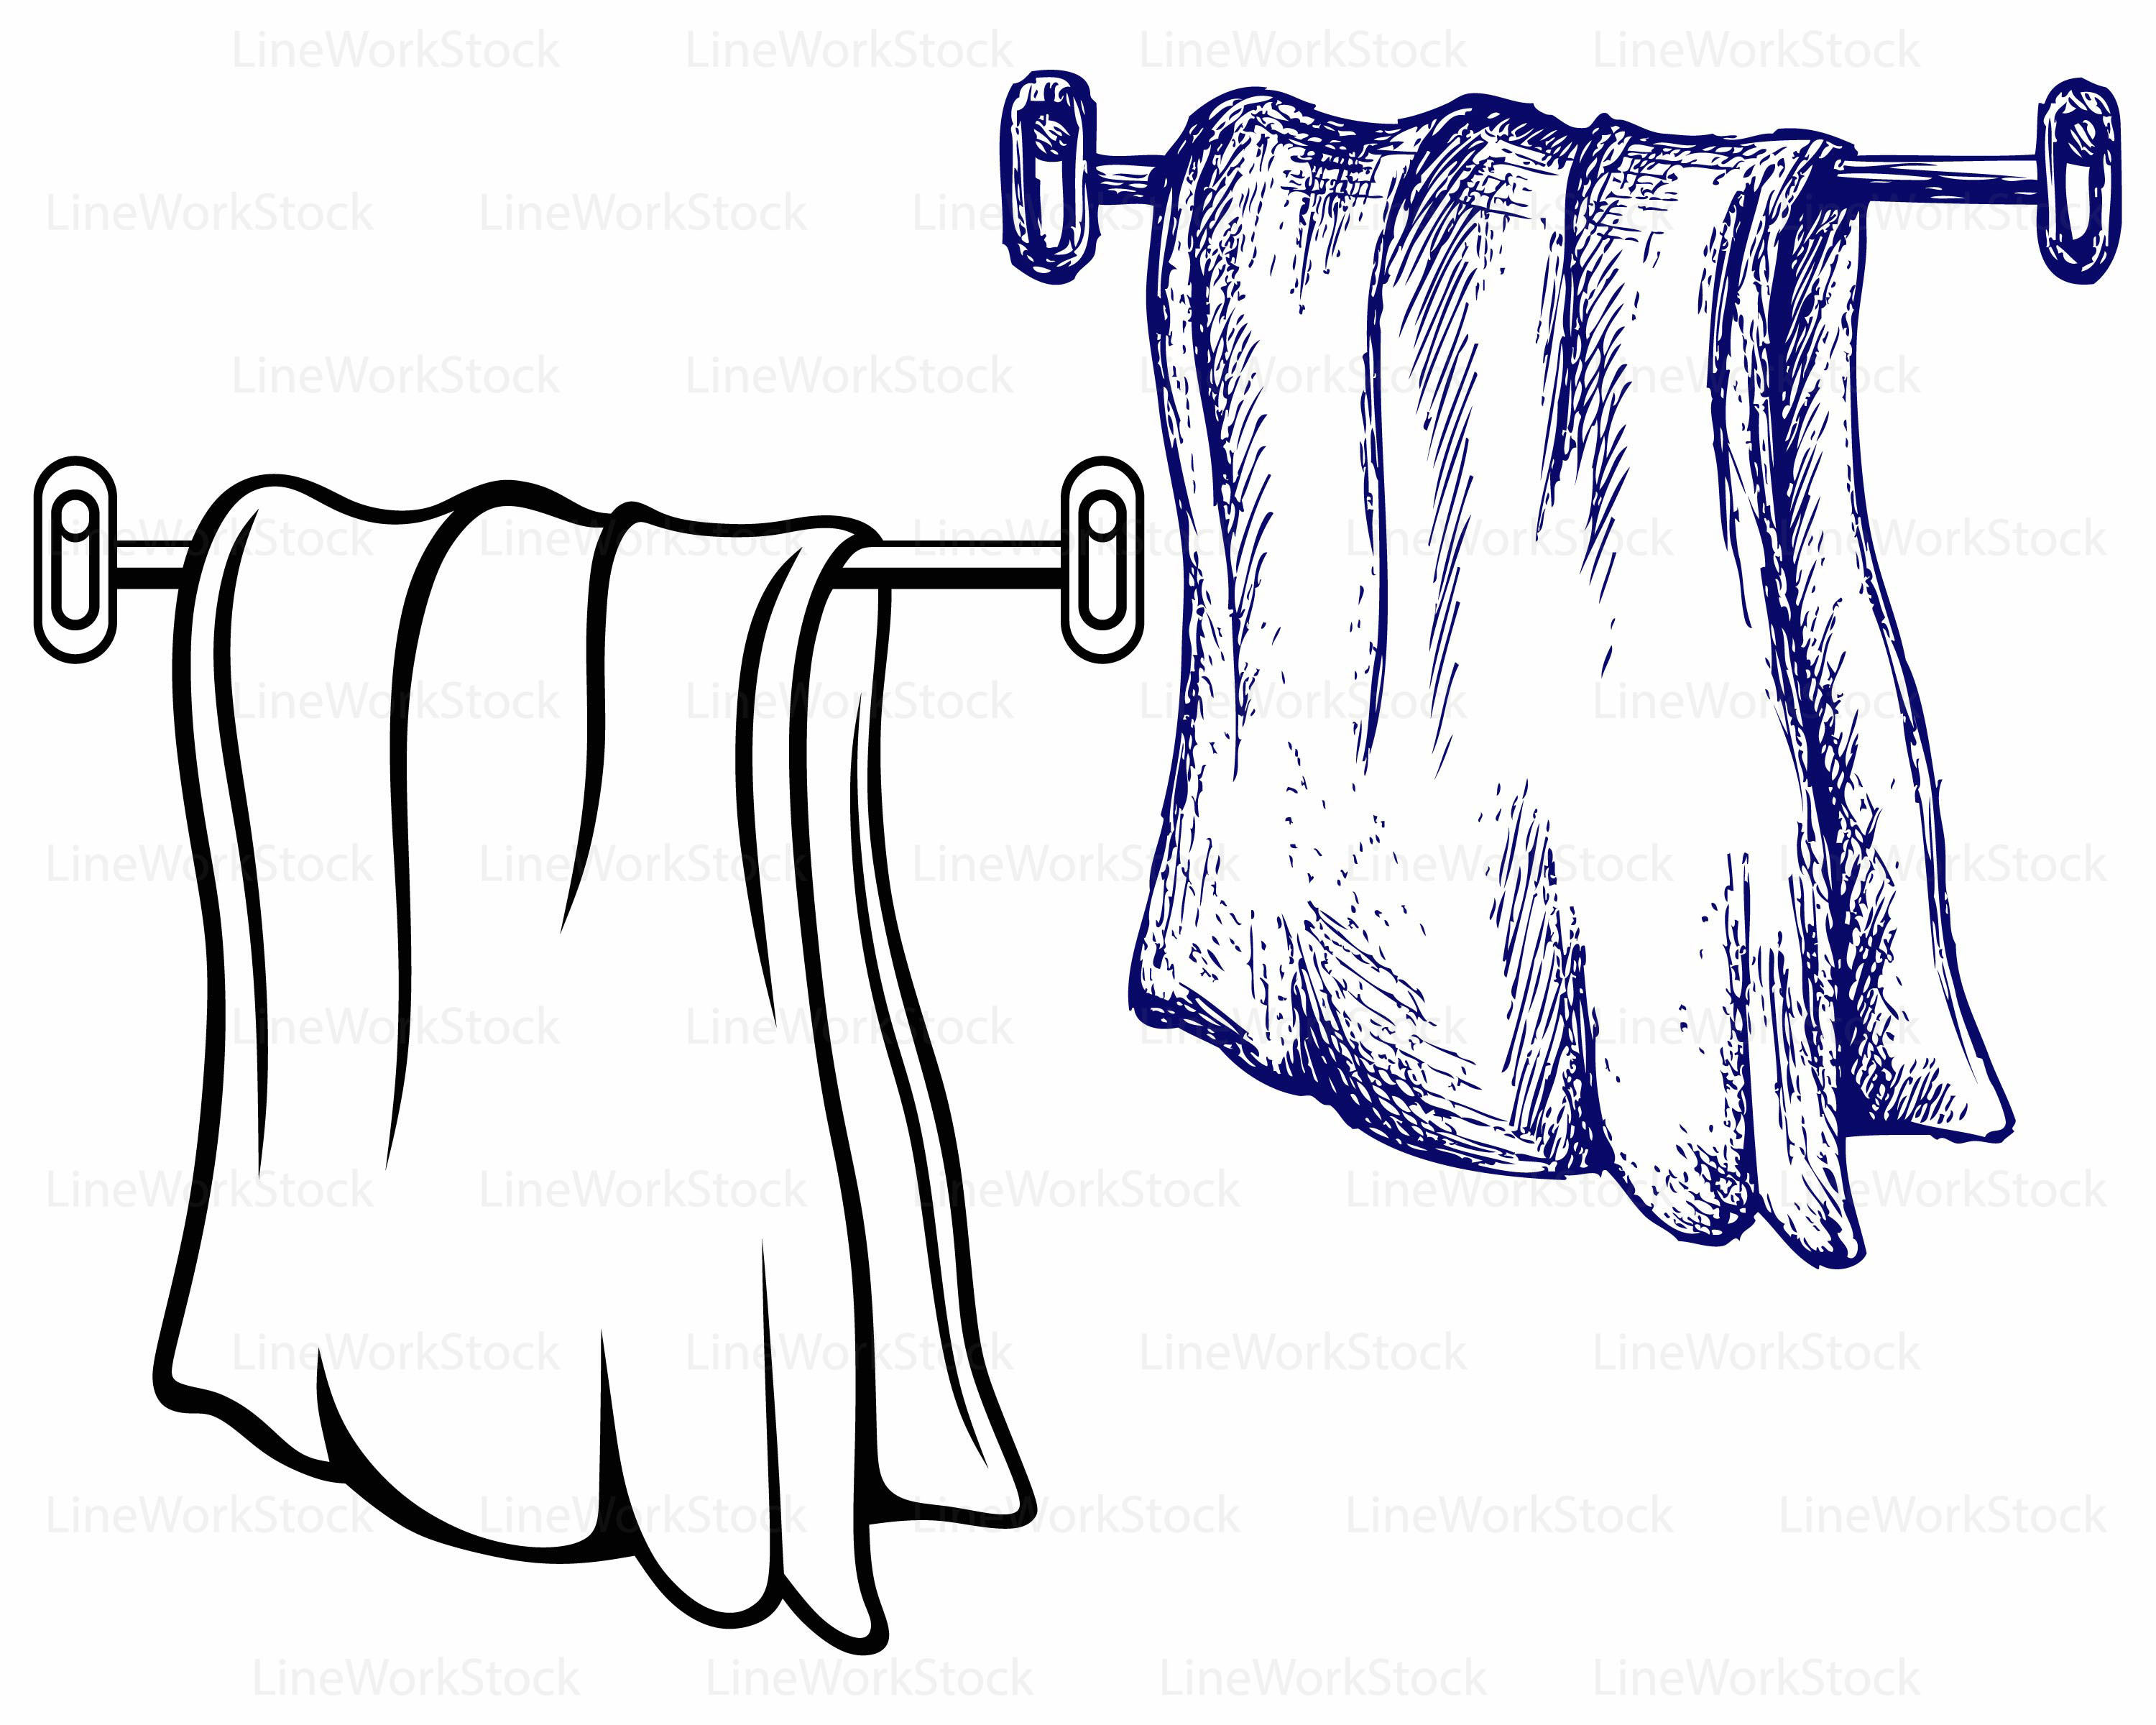 towel clipart at getdrawings com free for personal use towel rh getdrawings com beach towel clip art towel clipart png